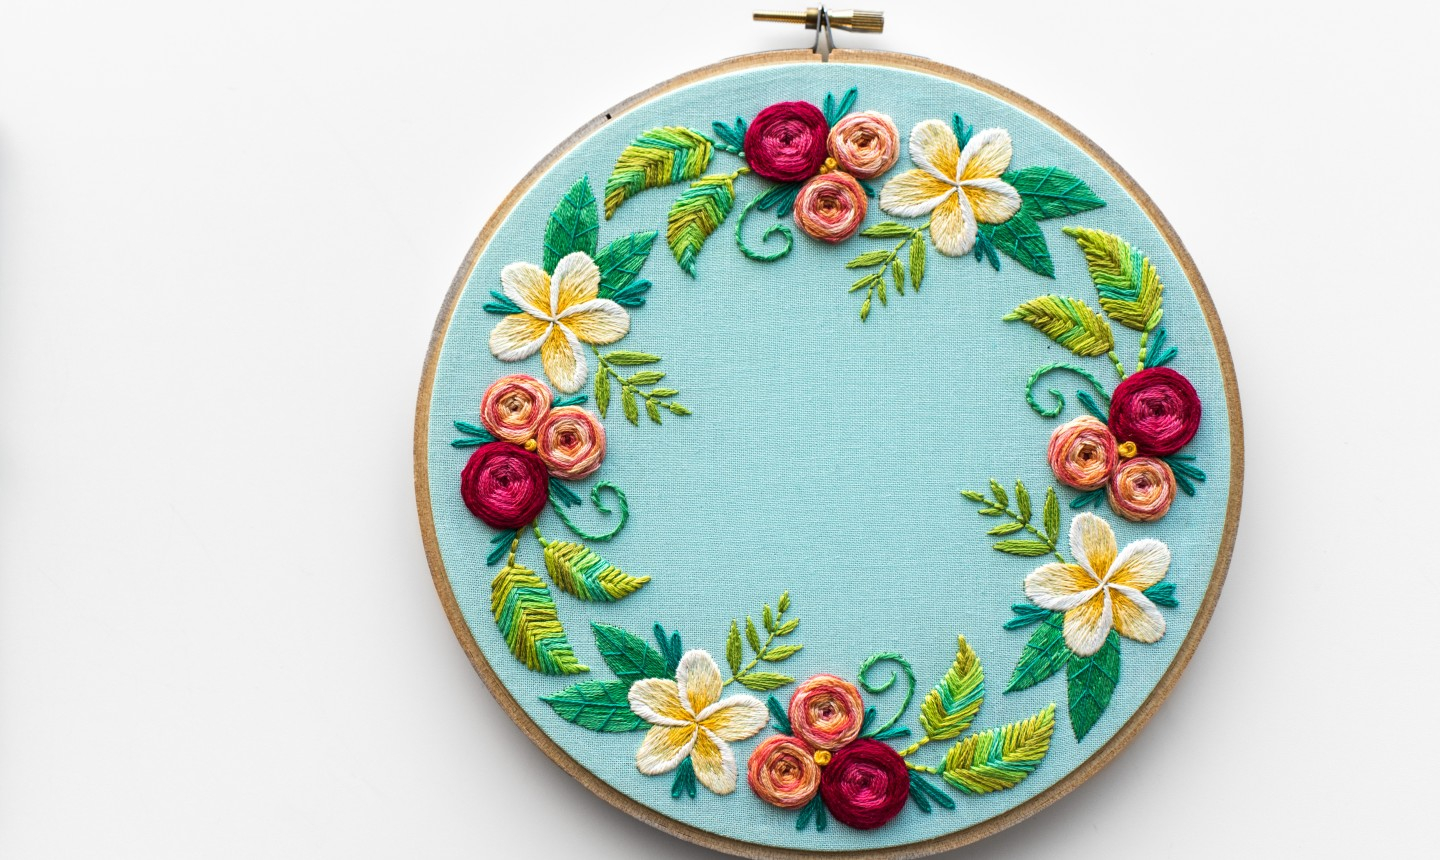 Rose Patterns For Embroidery 5 Beginner Hand Embroidery Projects